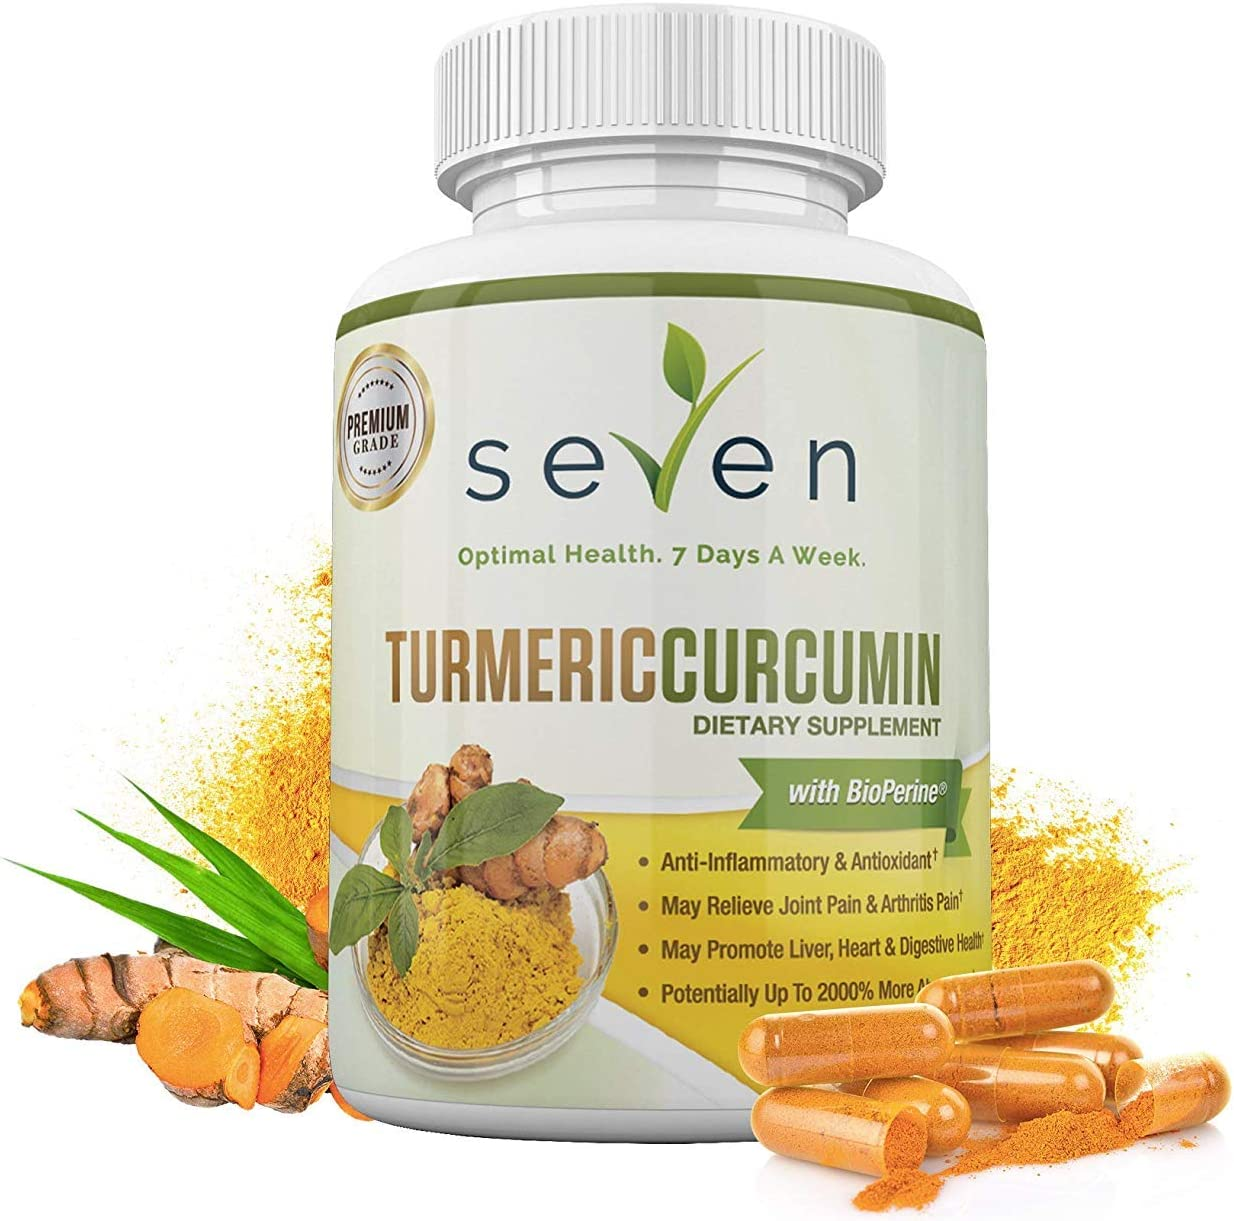 Turmeric Curcumin Supplement 1300mg BioPerine – 30 Day Supply of Highest Potency 95 Standardized Curcuminoids for Joint Pain Relief and Anti Inflammatory by Seven Nutrition